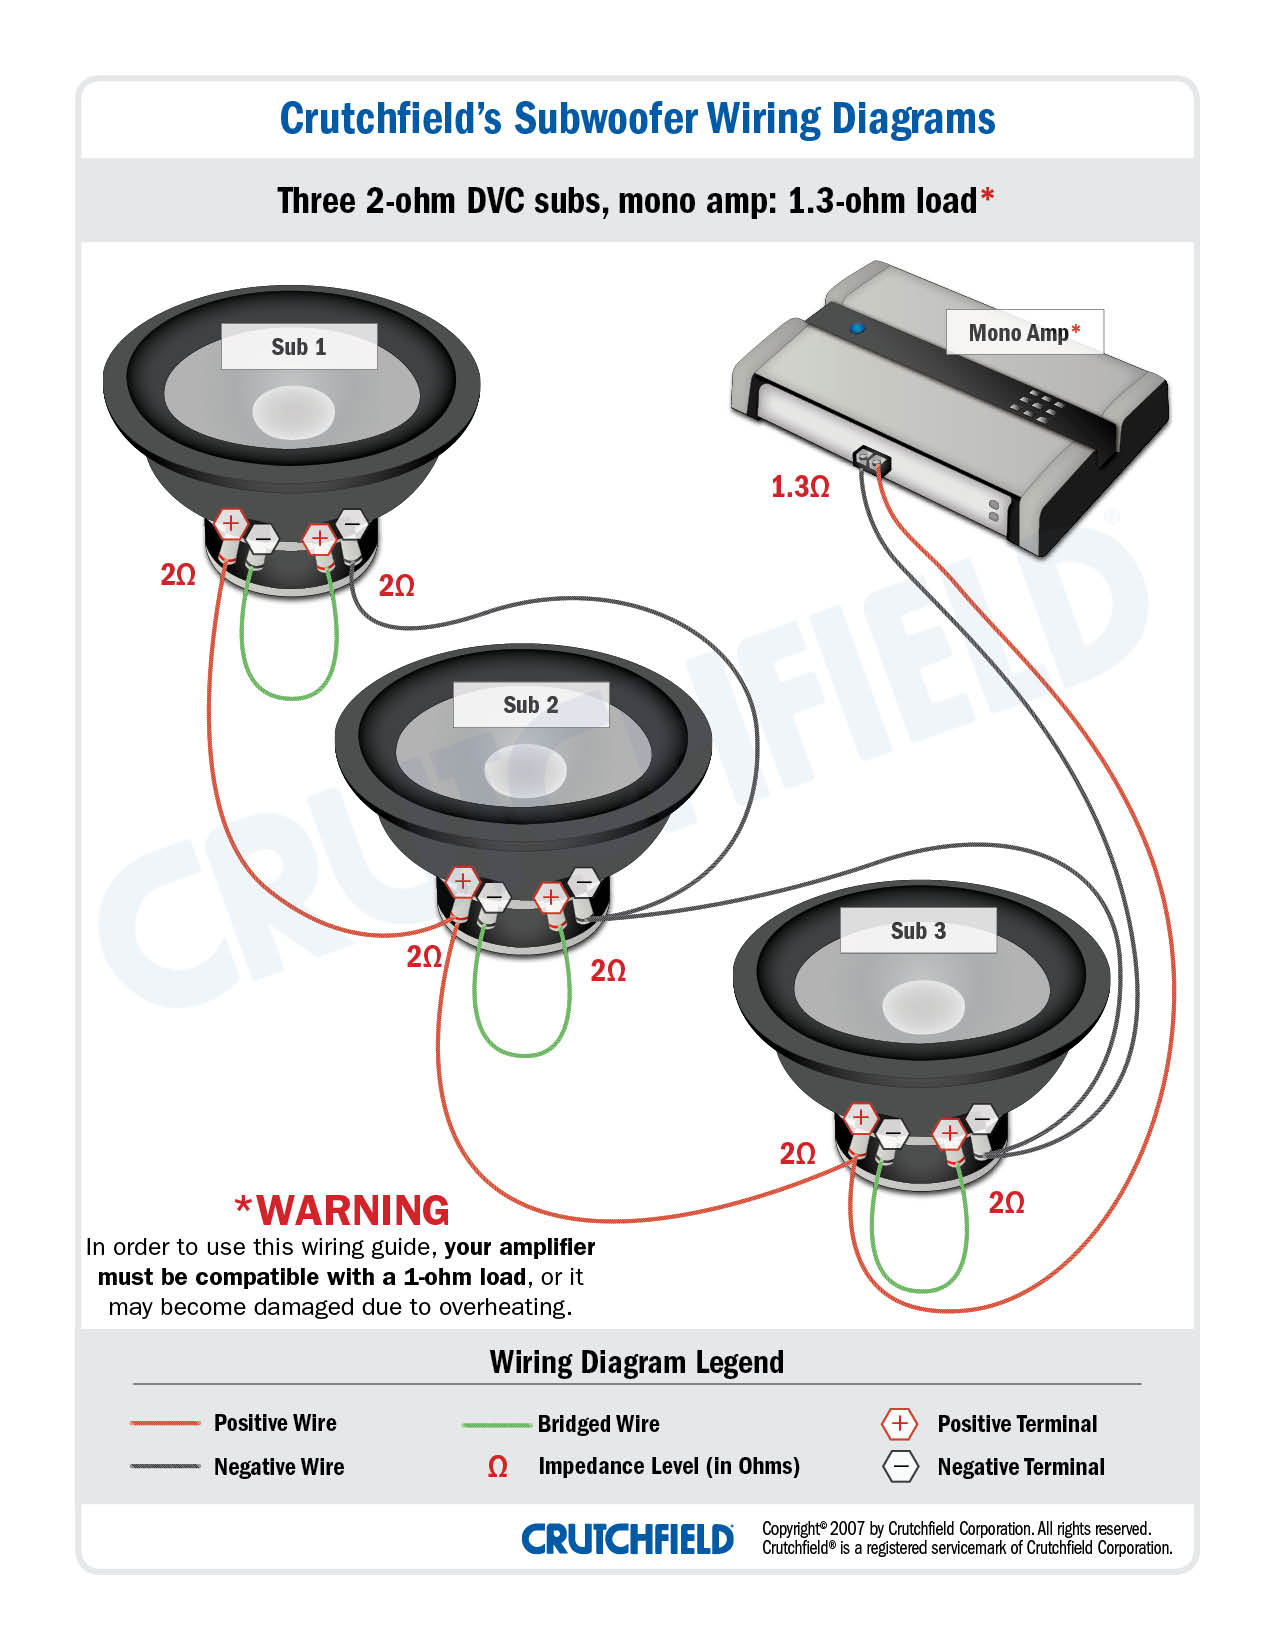 3 DVC 2 ohm mono low imp subwoofer wiring diagrams  at creativeand.co